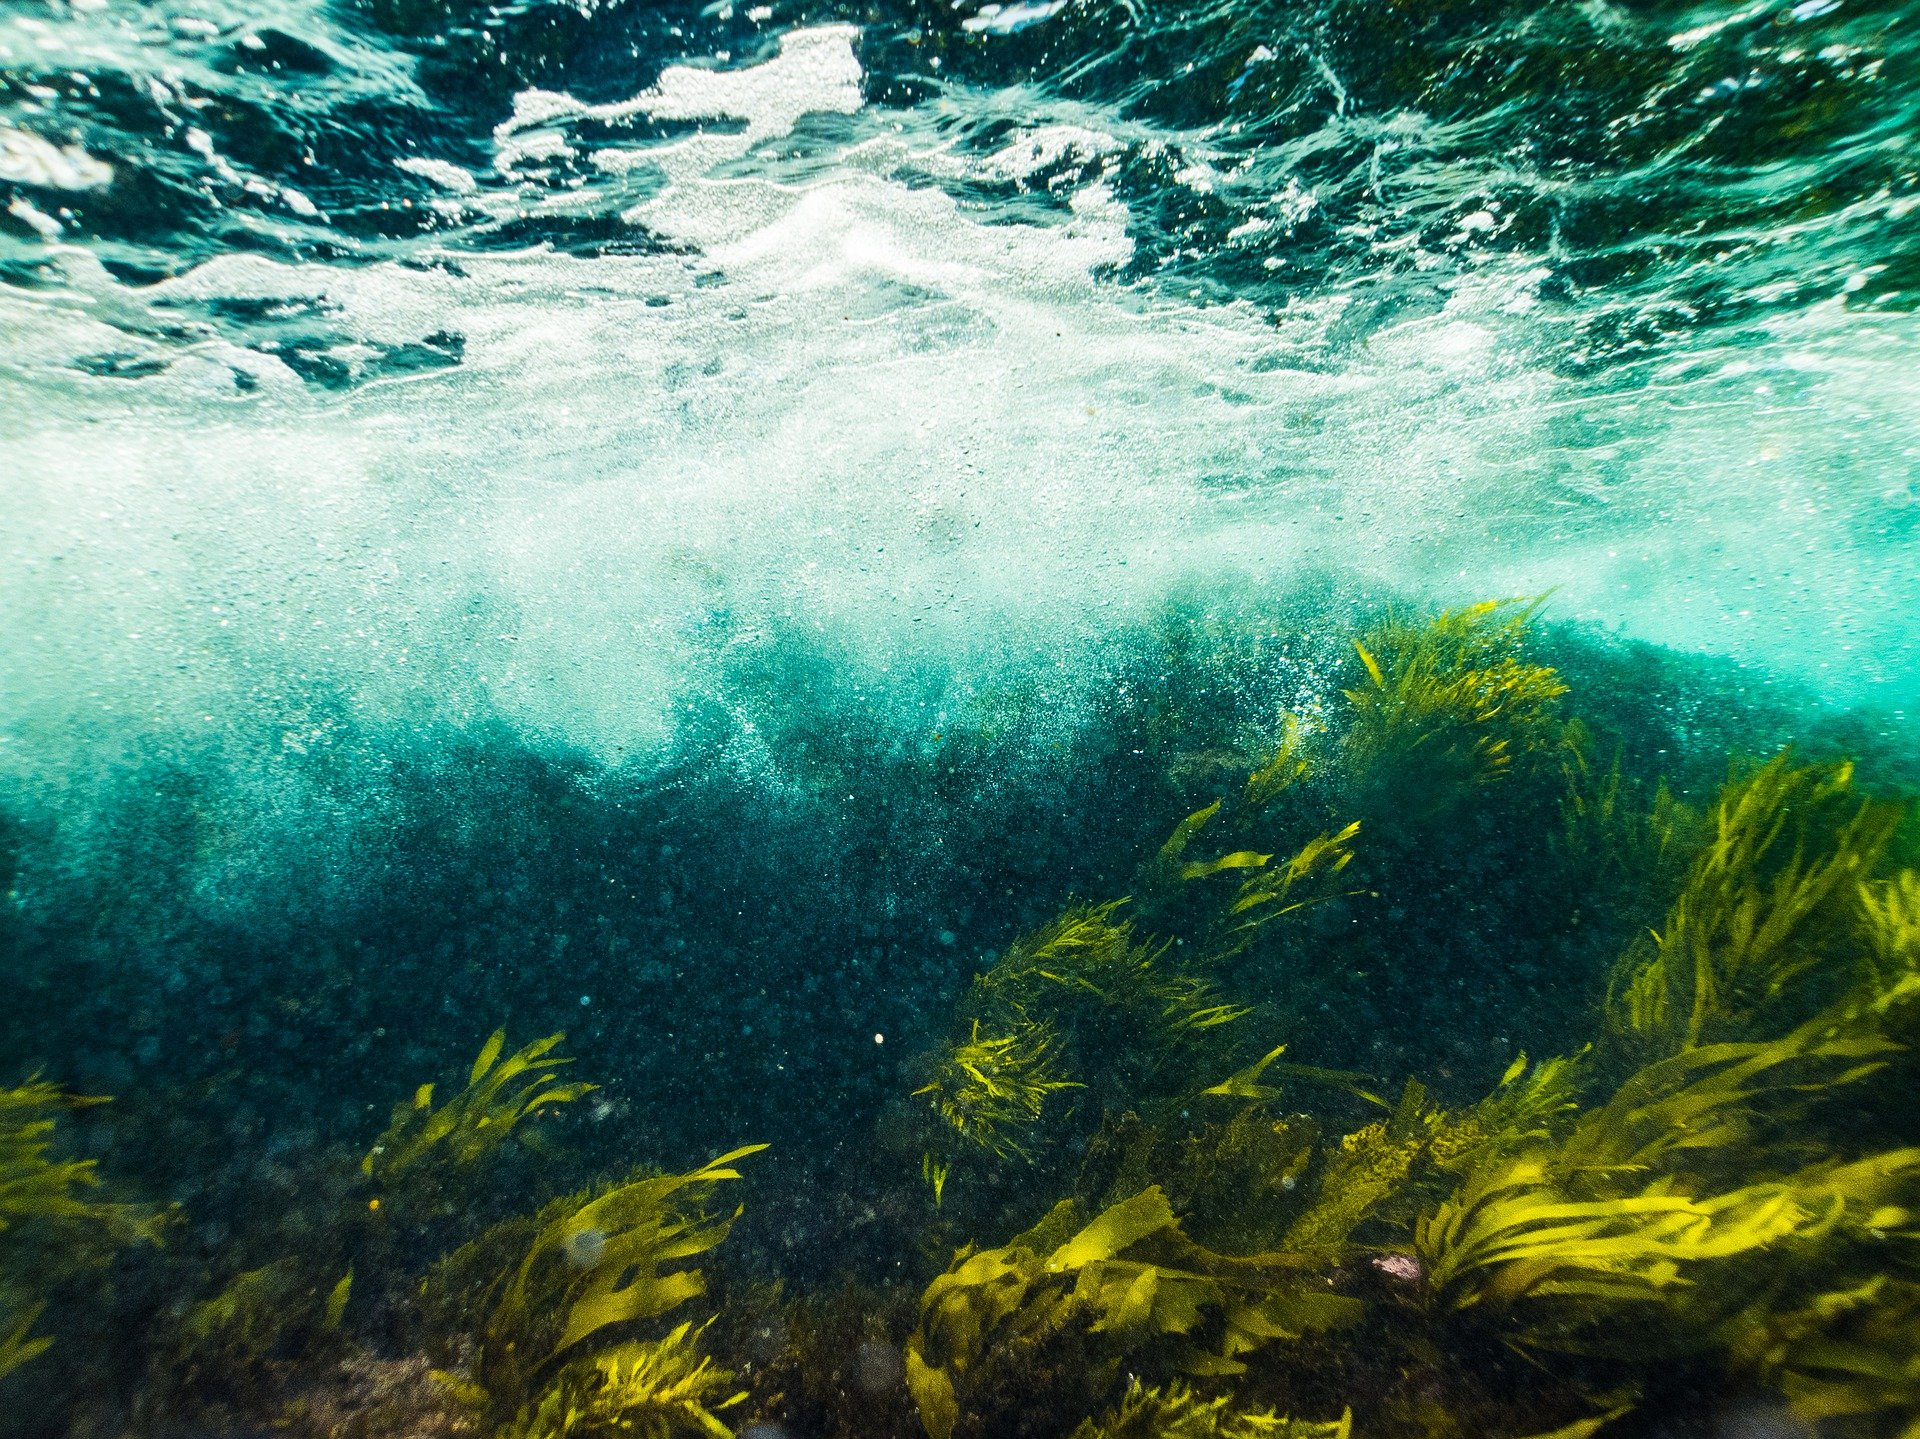 Forget planting trees: This company is making carbon offsets by putting seaweed on the ocean floor